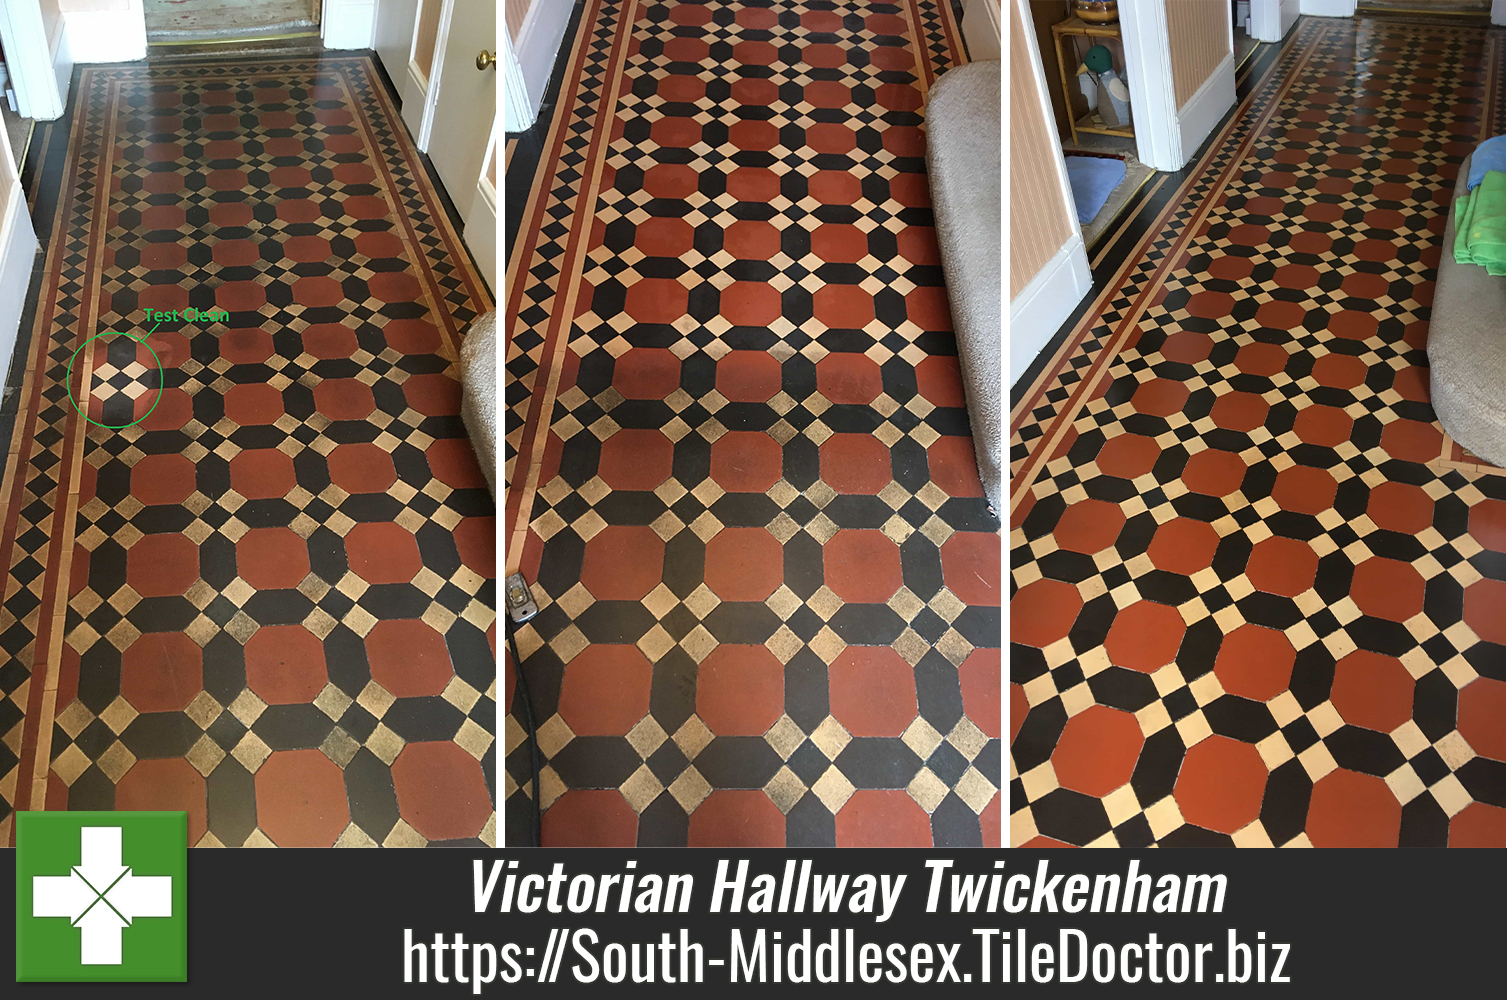 Renovating-Victorian-Hallway-Floor-Twickenham-Middlesex